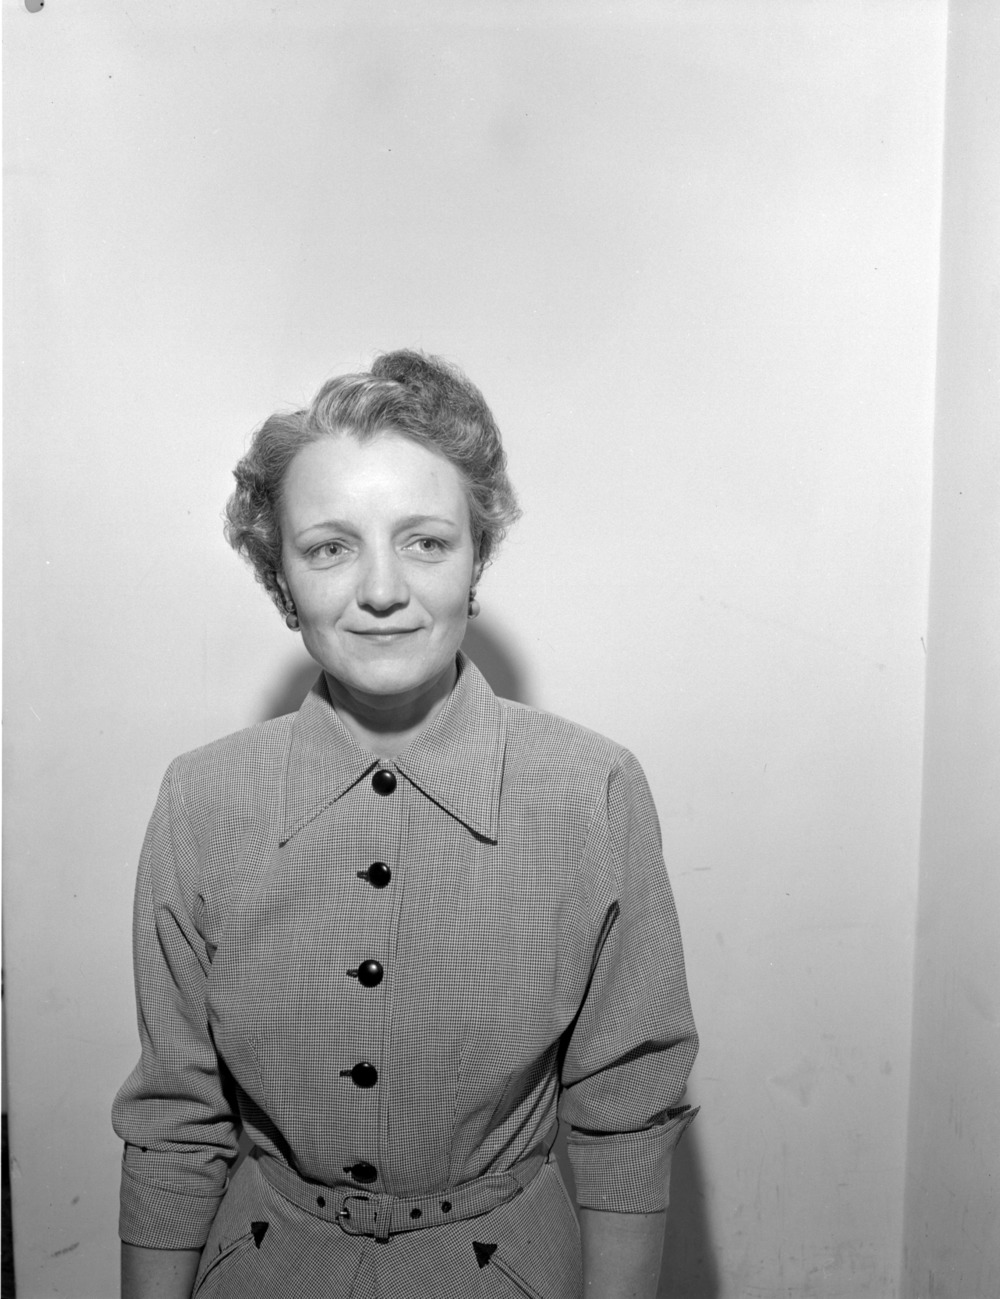 Portrait of Miss Marjorie Tubbs, Administrator of Cripples Children's Convalescent Home. January, 1950.